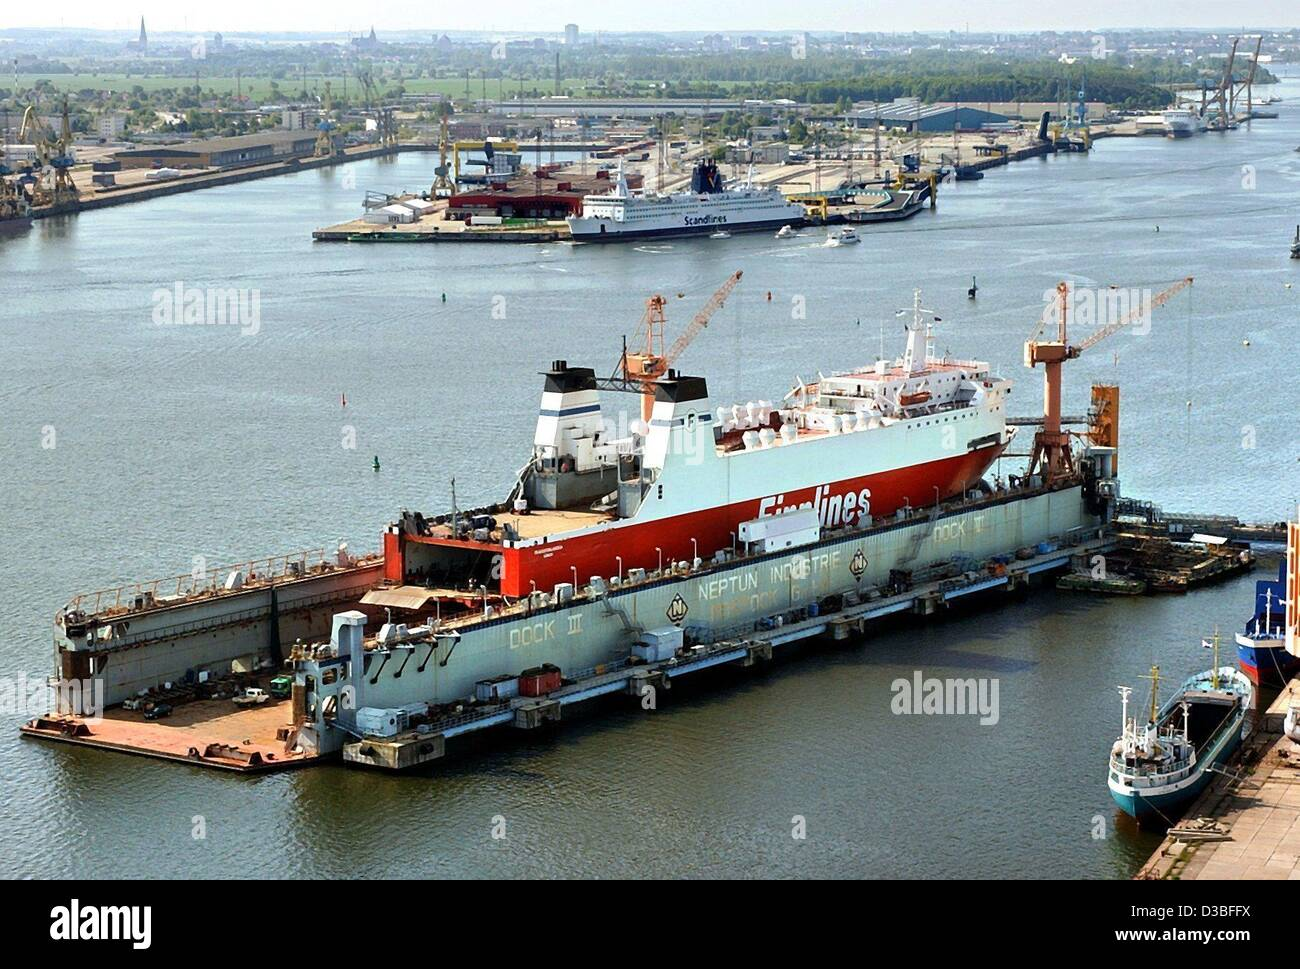 (dpa) - The freight ship Transfinnlandia of the 'Finnlines' lies for maintenance in the swimming dockyard - Stock Image